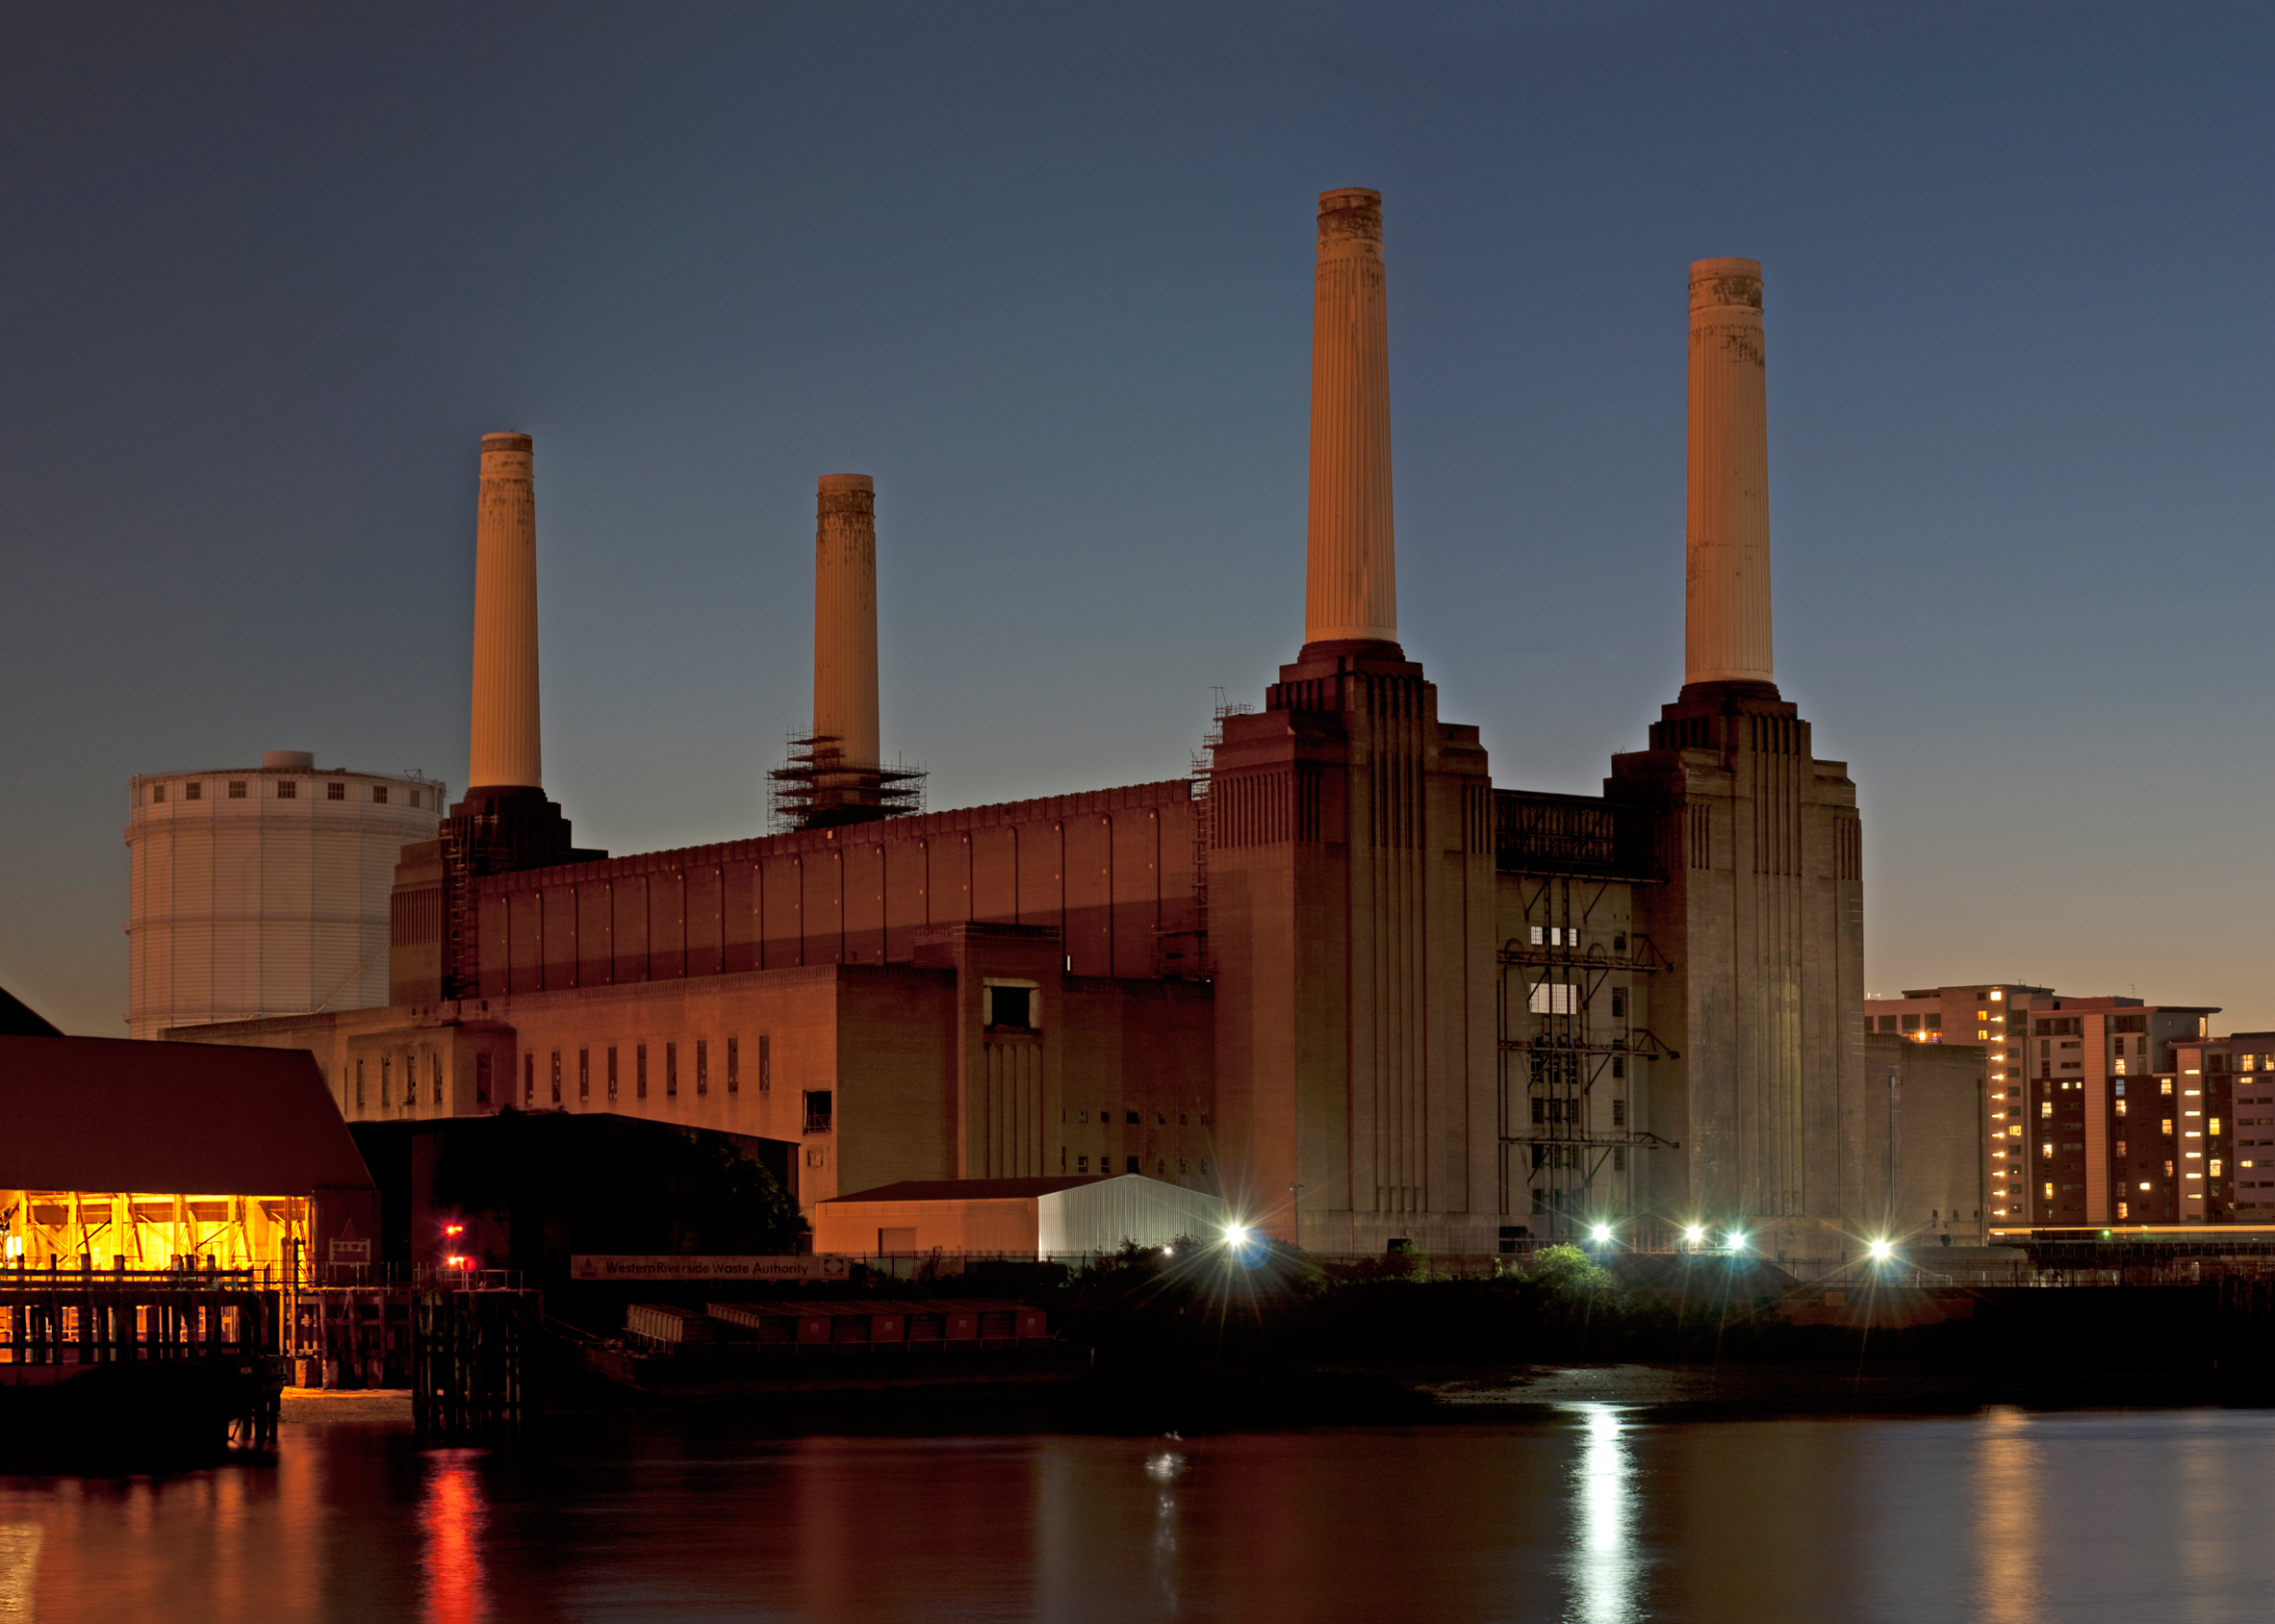 Apple to move into Battersea Power Station